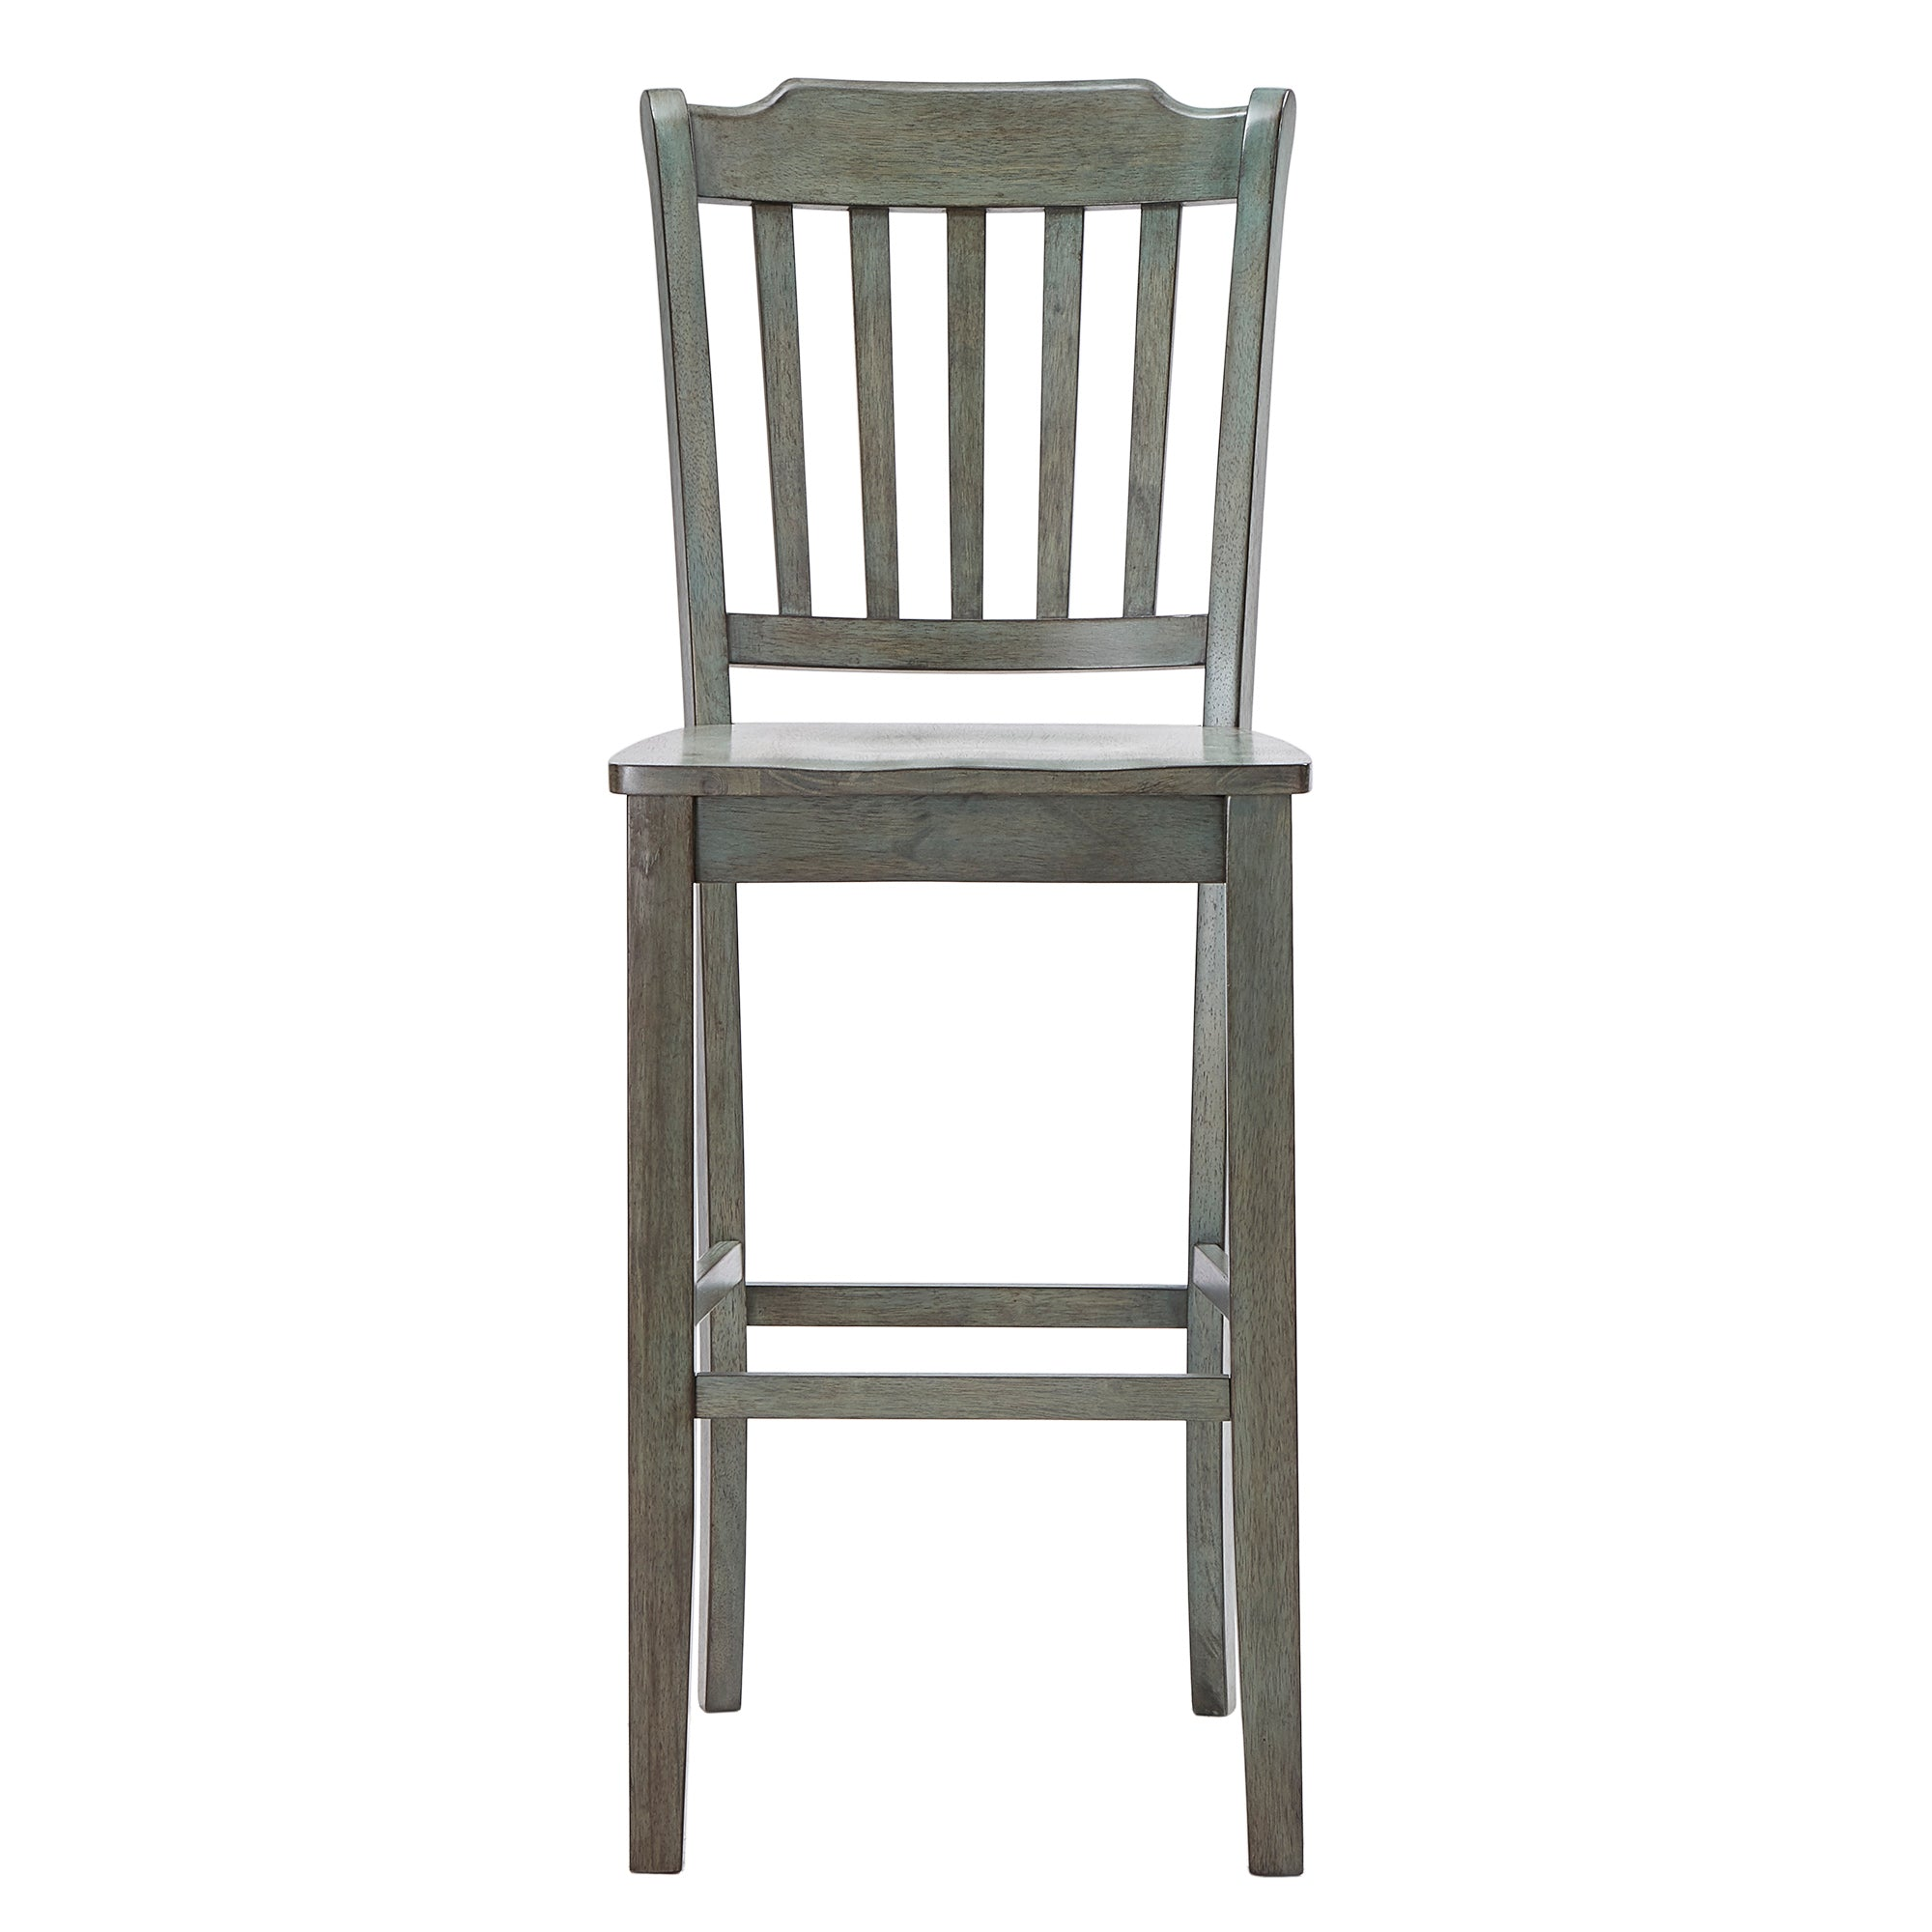 Slat Back Bar Height Chairs (Set of 2) - Antique Sage Finish